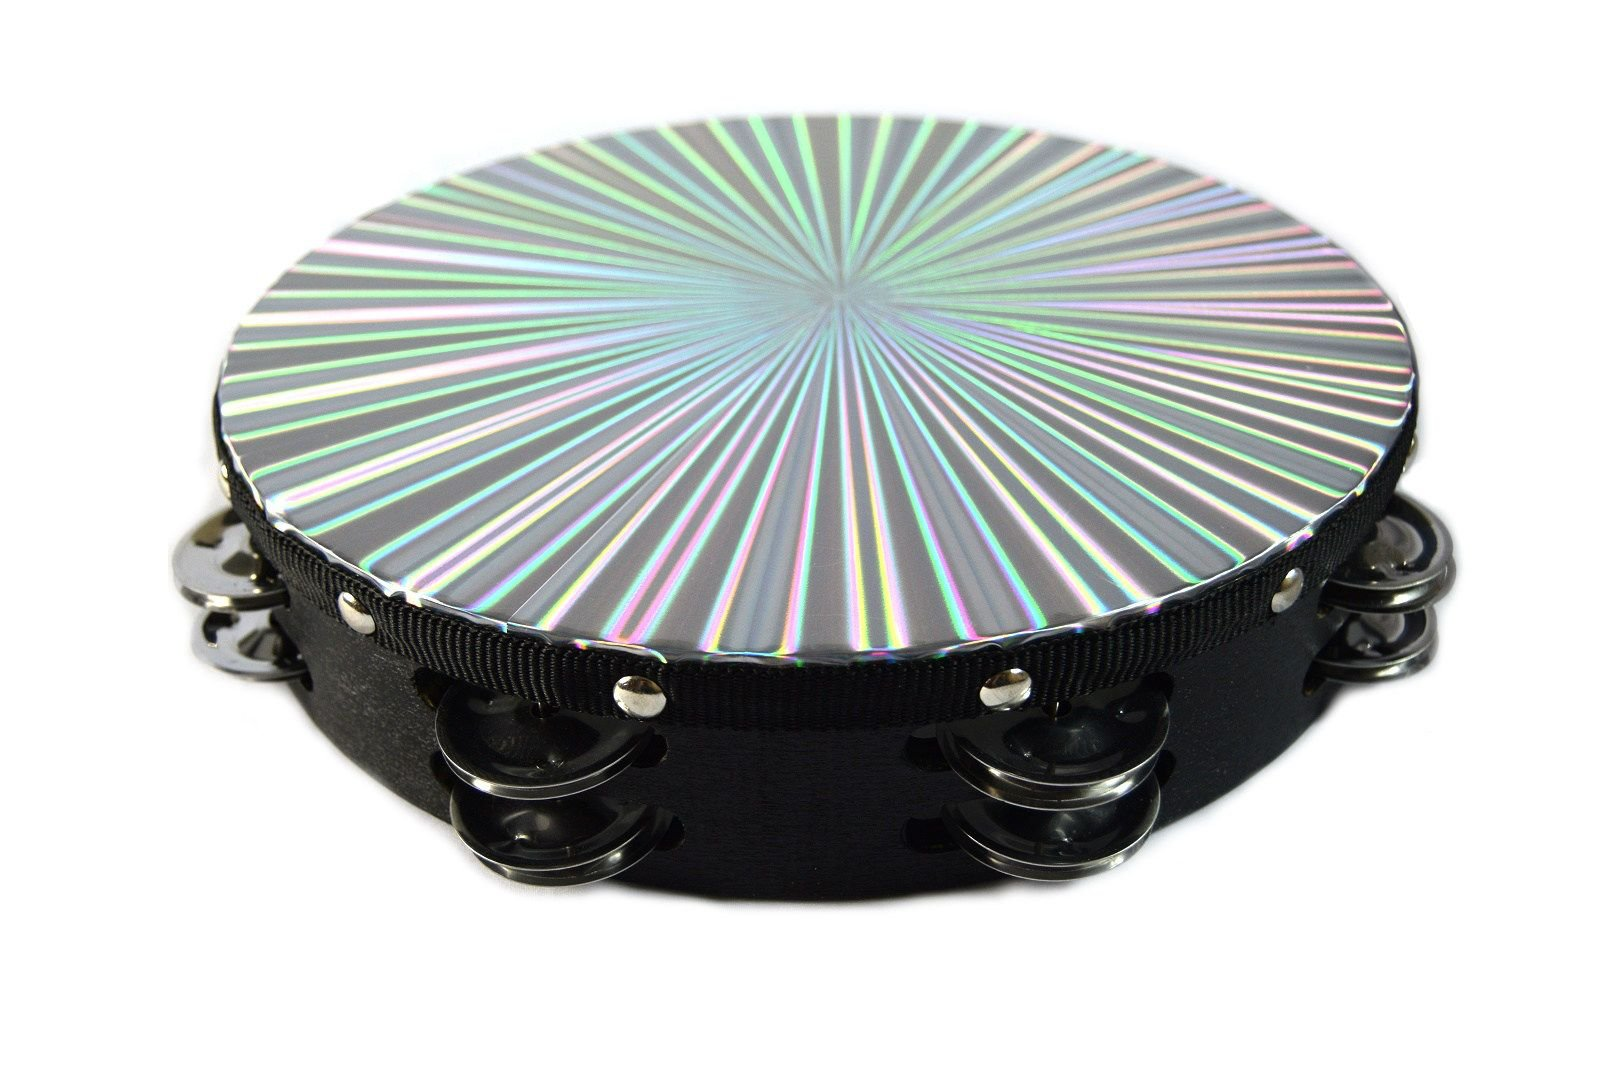 Musical Tambourine 8'' Reflective Percussion Double Row Jingles Wood Hand Held